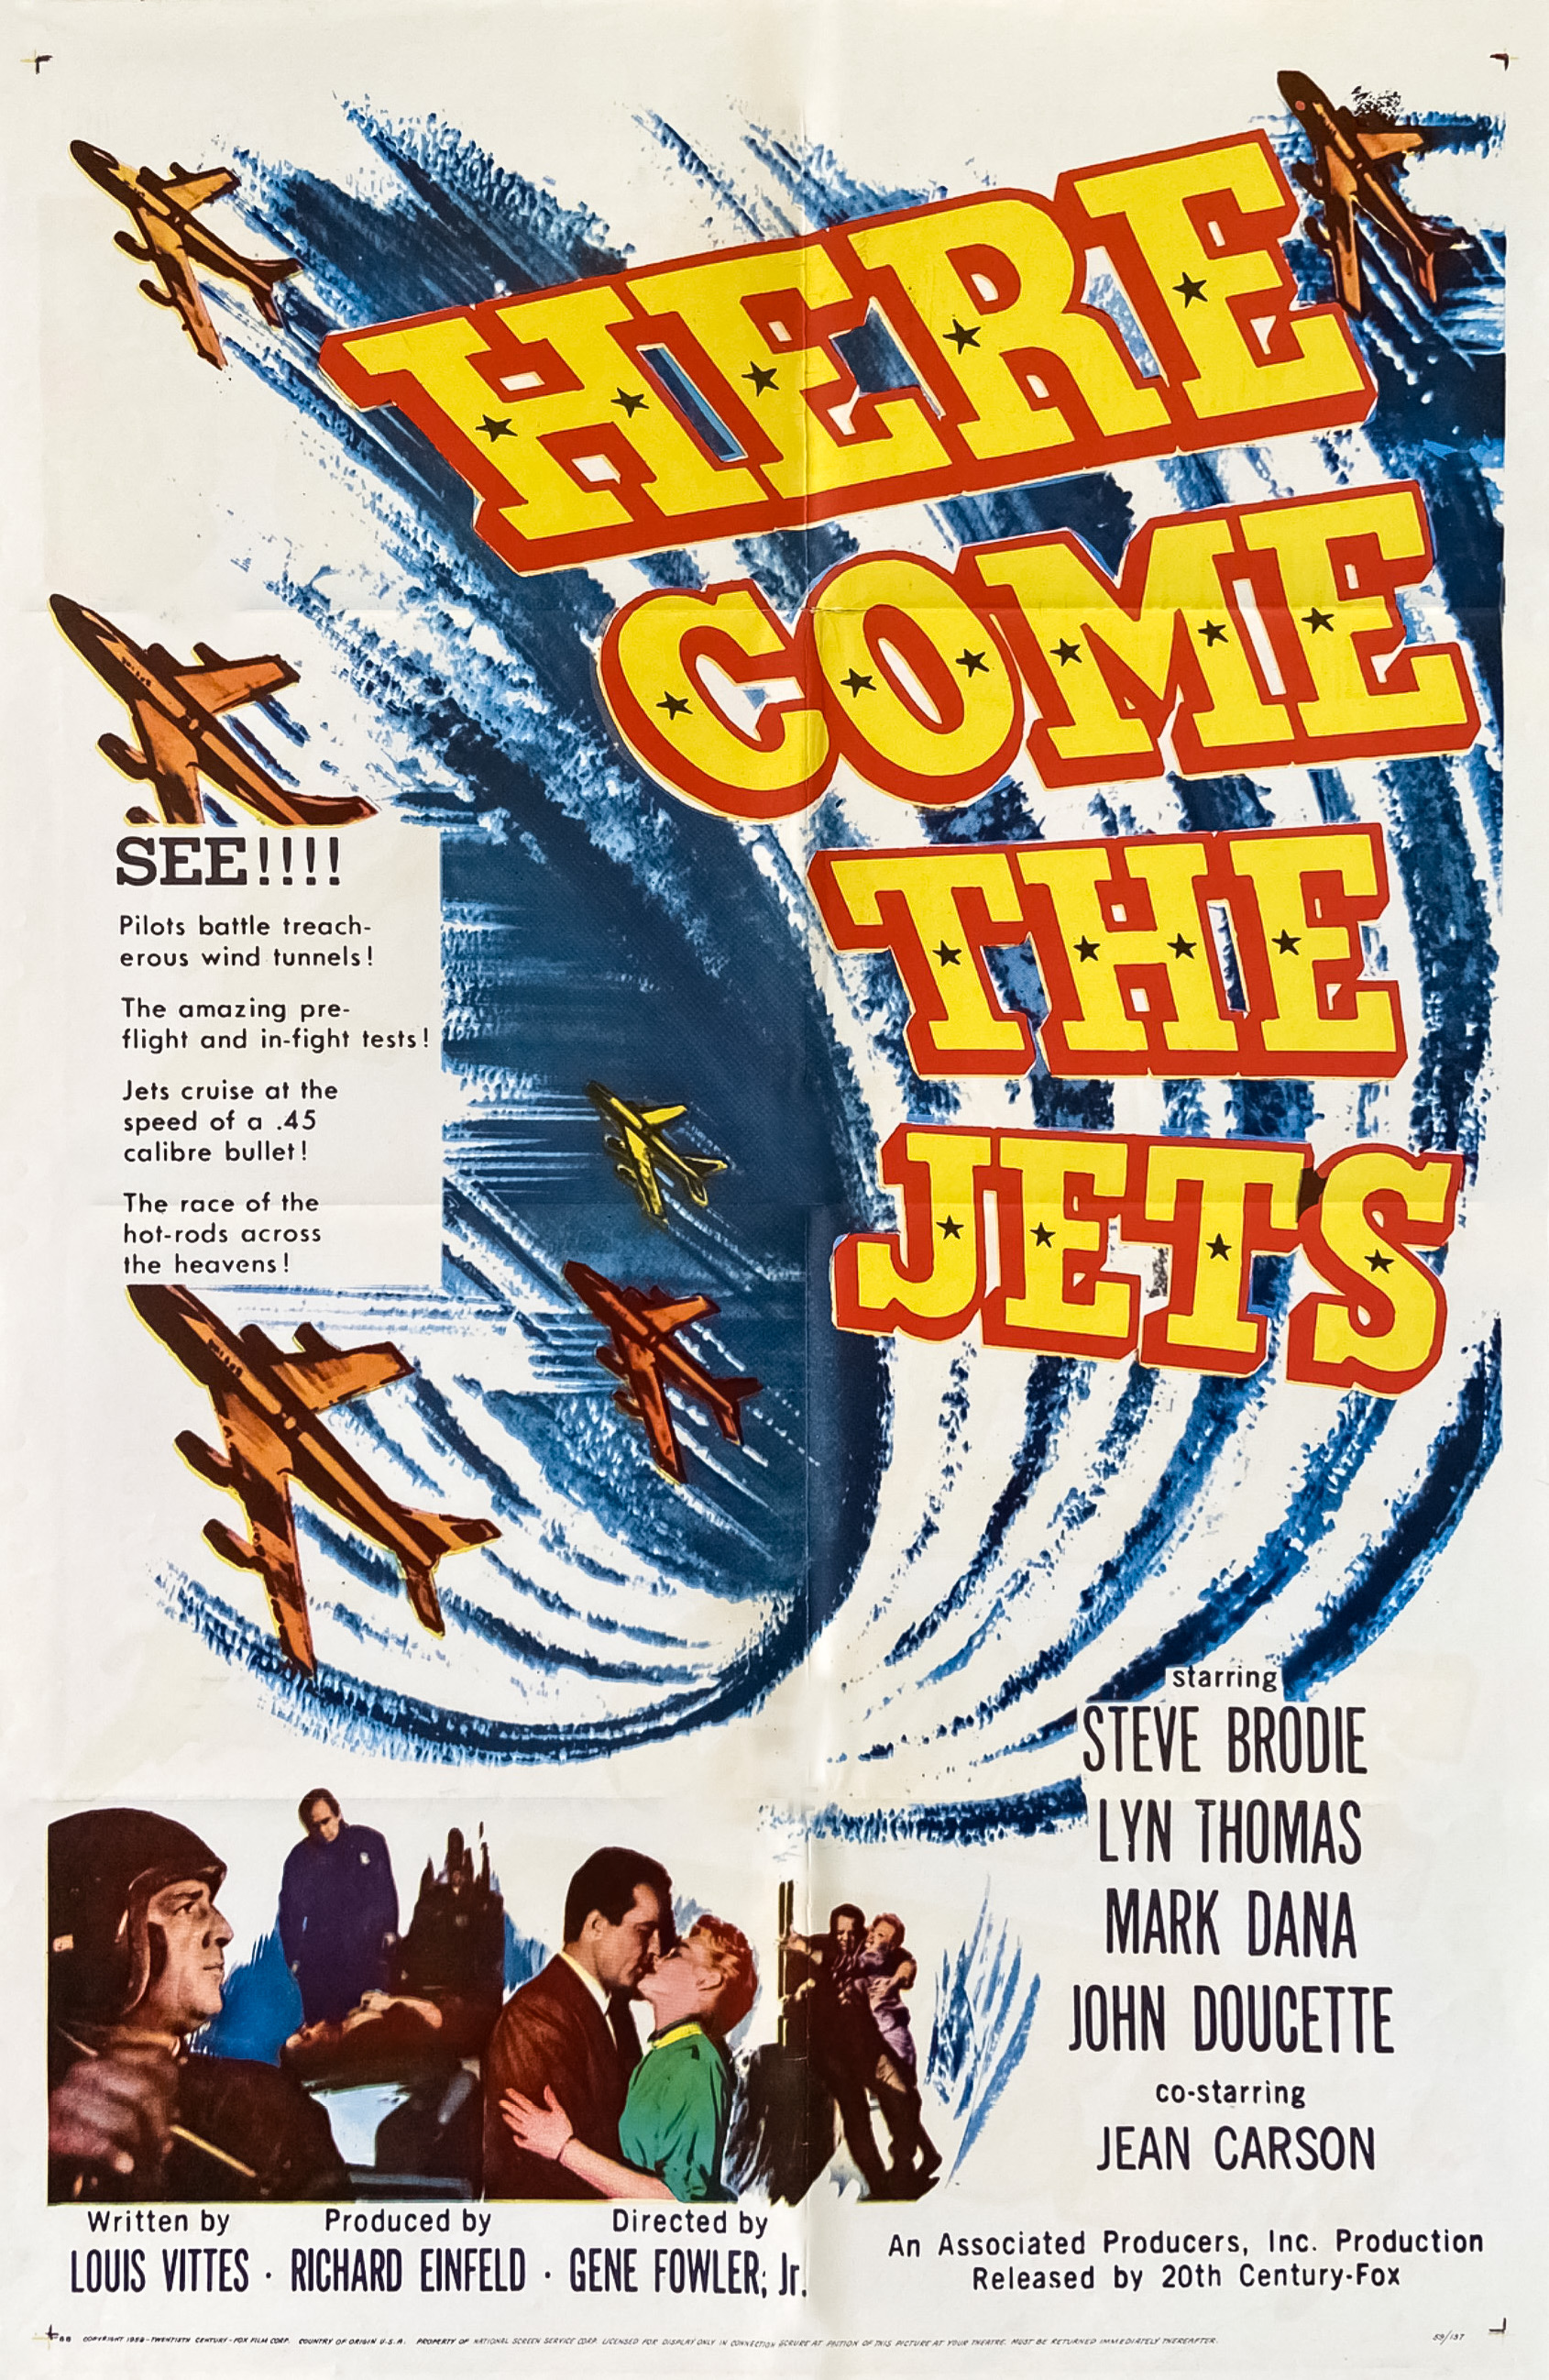 Steve Brodie, Jean Carson, Mark Dana, and John Doucette in Here Come the Jets (1959)